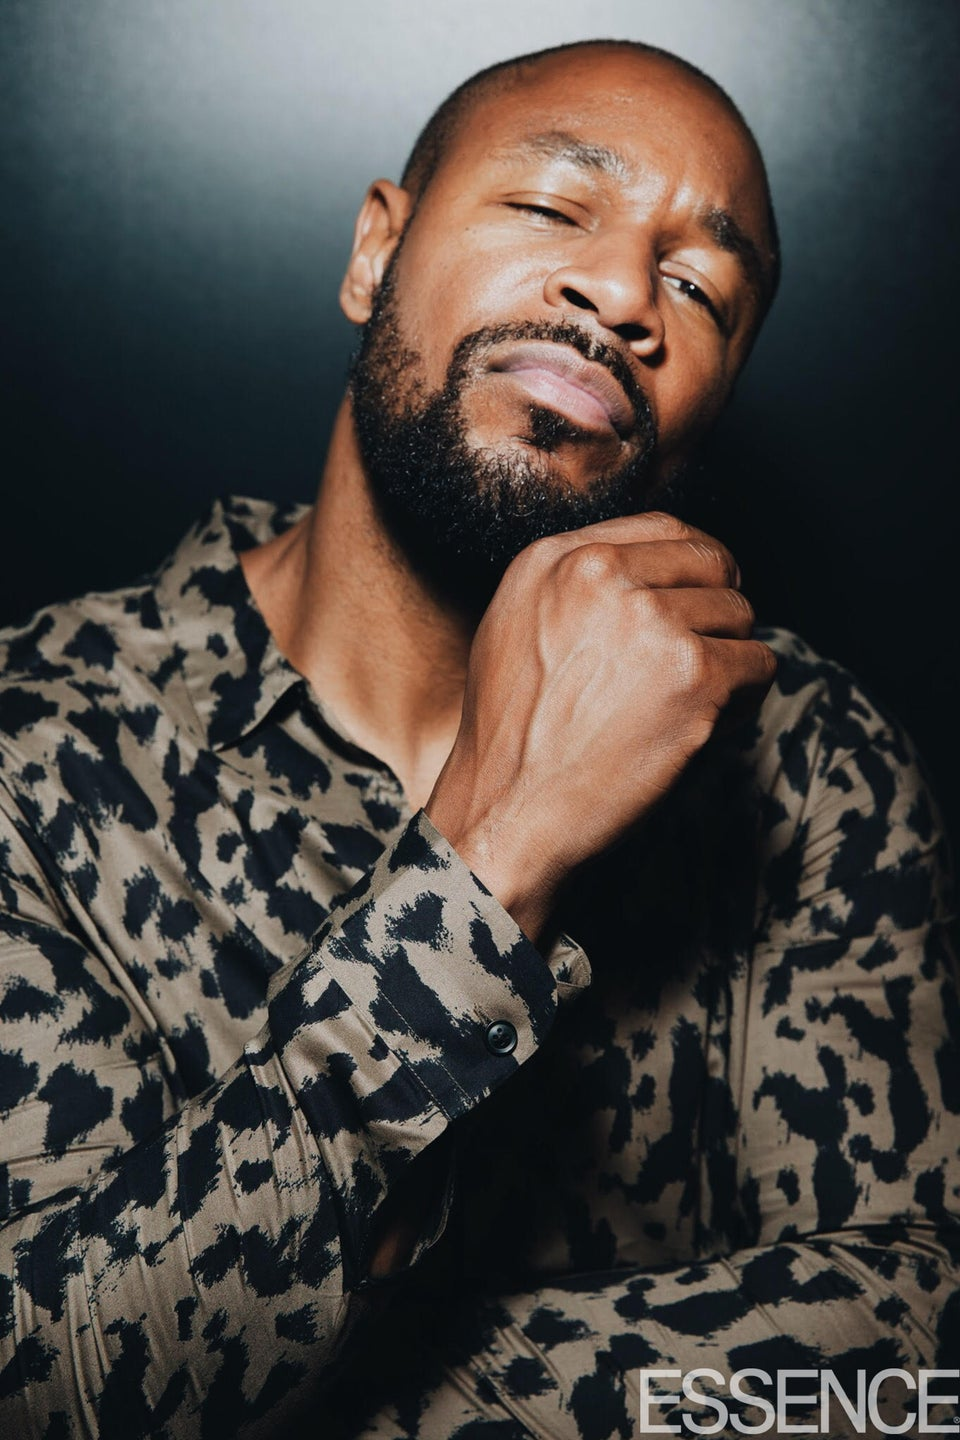 Tank Drops The Steamy New Video For 'When We Remix' Featuring Trey Songz And Ty Dolla $ign